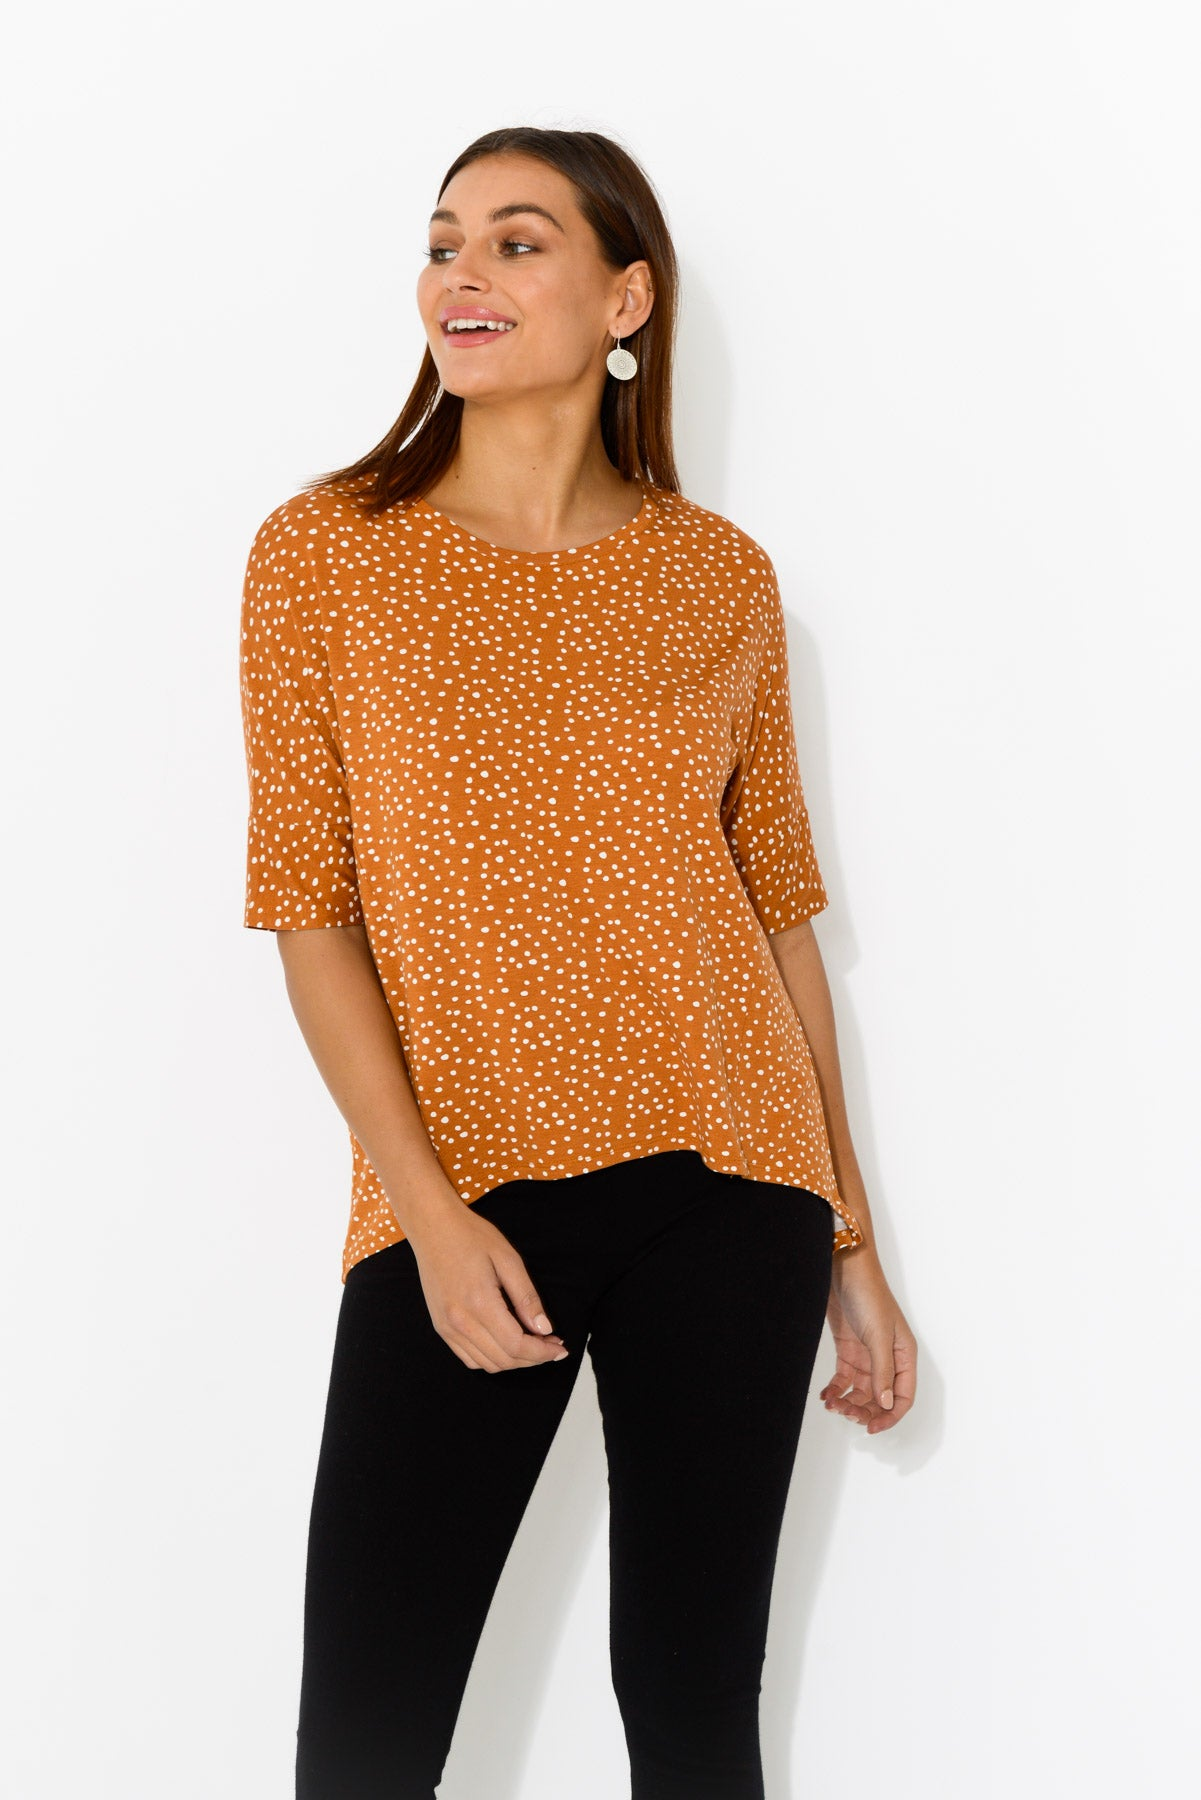 Wellington Orange Spot Tee - Blue Bungalow